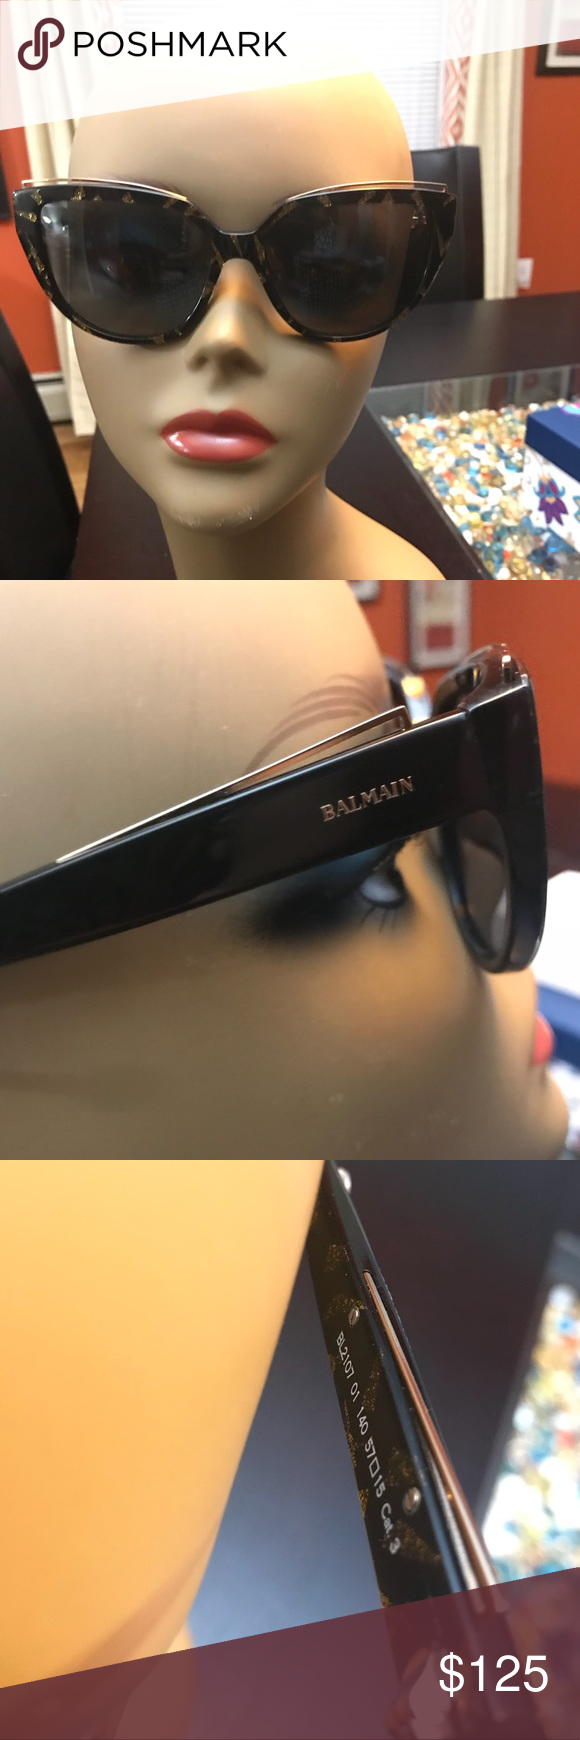 8d3d89860ce 🔥Balmain Black and Gold rounded cat-eye🔥 BL2107 Balmain Black and Gold  Ladies large frames sunglasses! Unique in color and metal detail is a nice  touch!